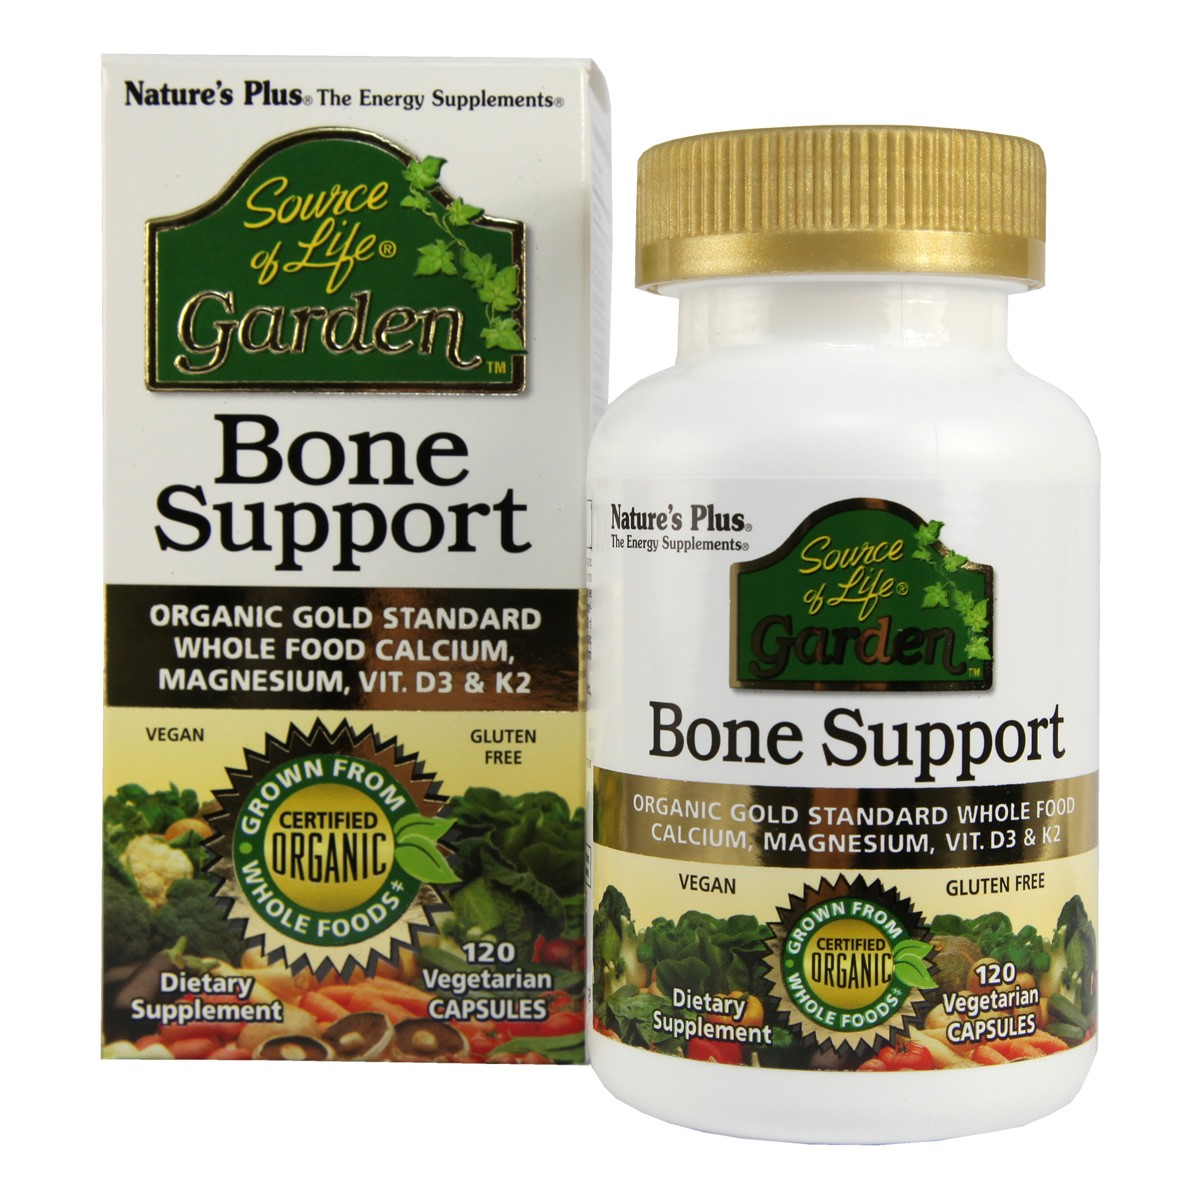 Natures Plus Source of Life Garden Bone Support Vcaps